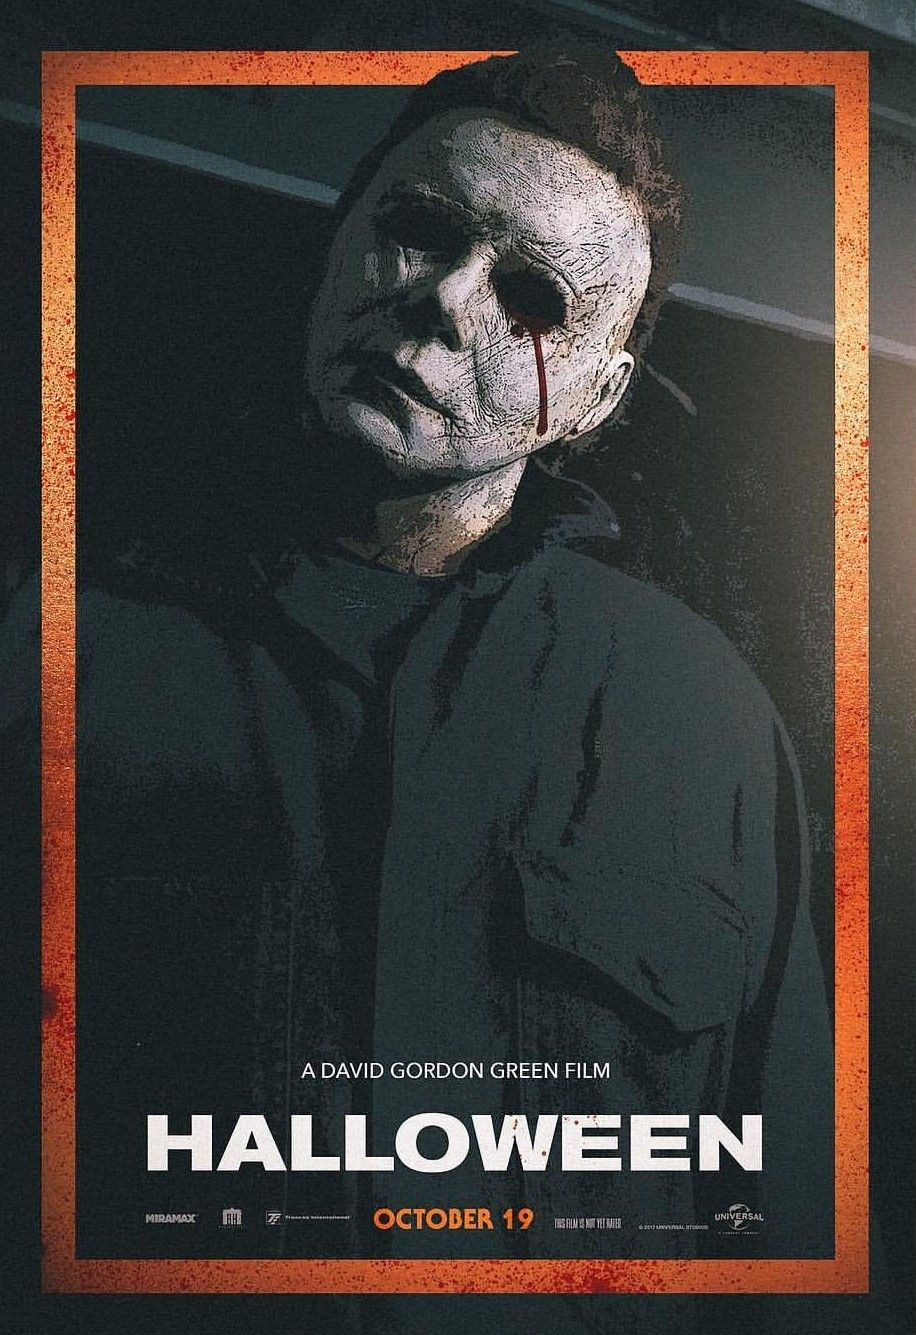 Pin By S A N D E R On Michael Myers Halloween Halloween Movie Poster Halloween Horror Movies Classic Horror Movies